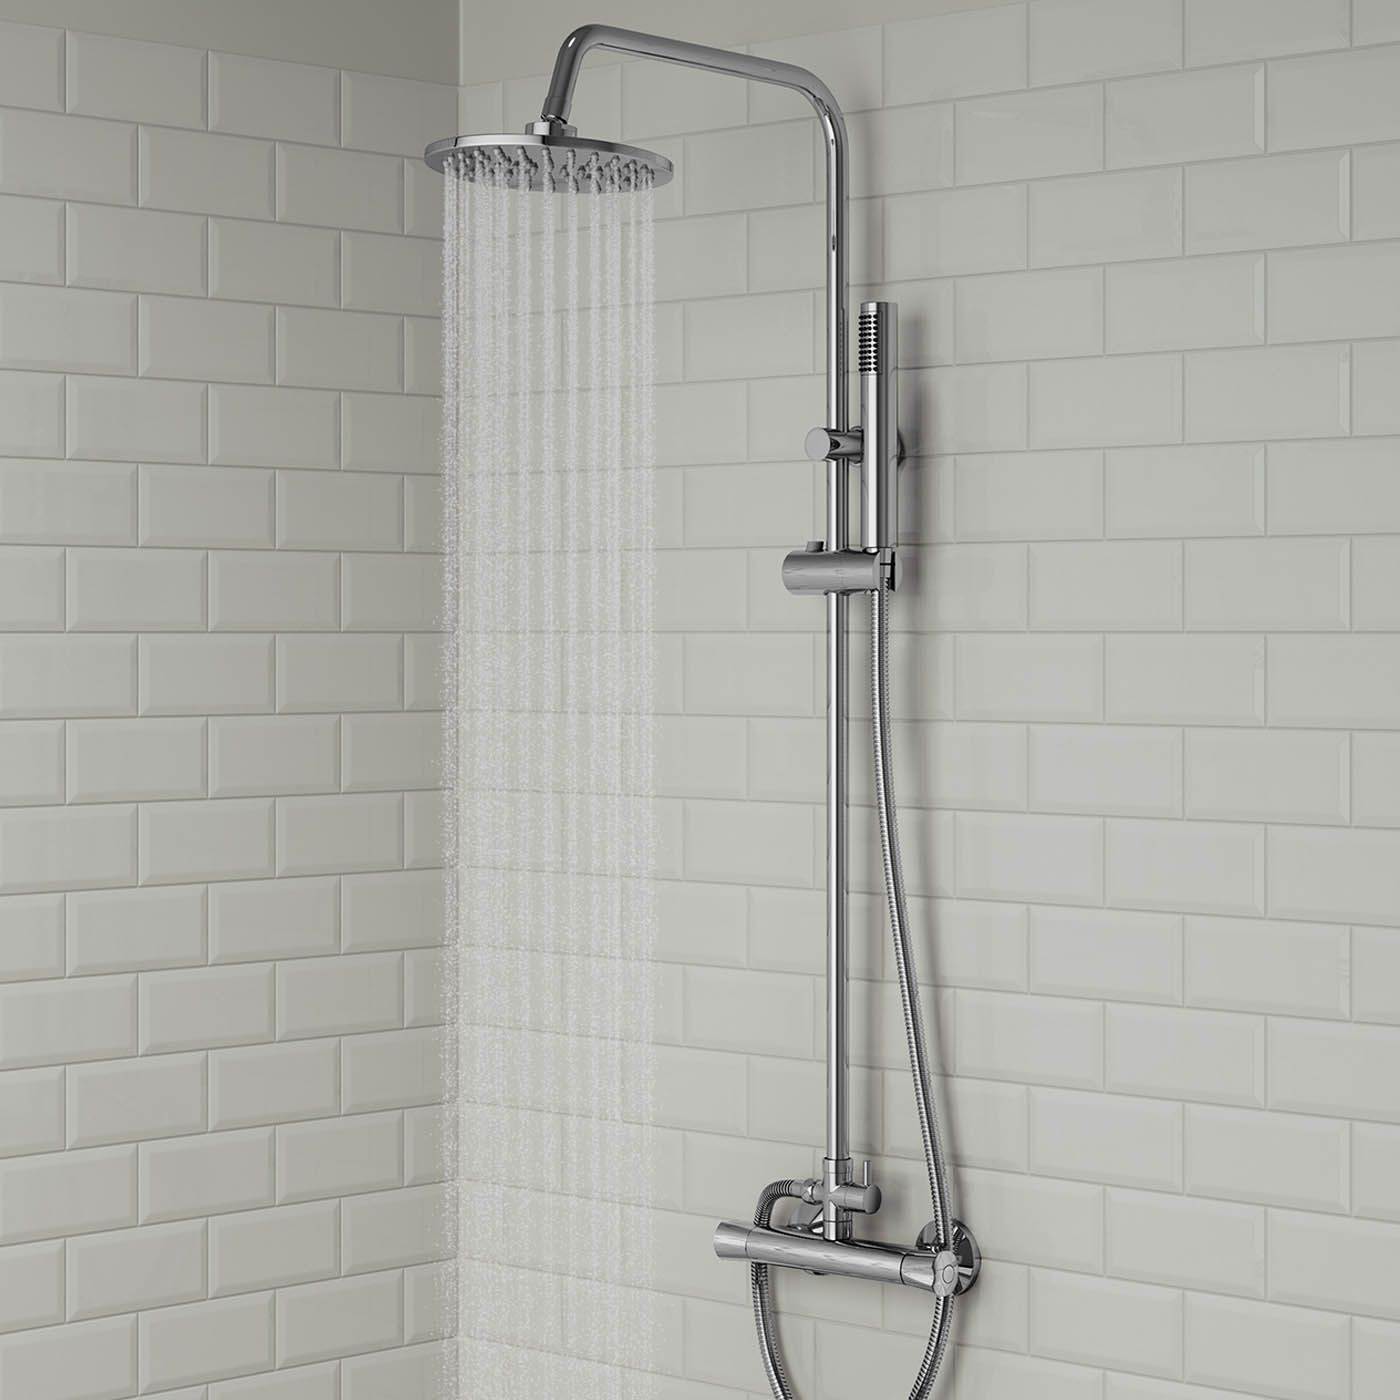 Shower | Luxury | Pinterest | Shower kits, Hand holding and Shower ...